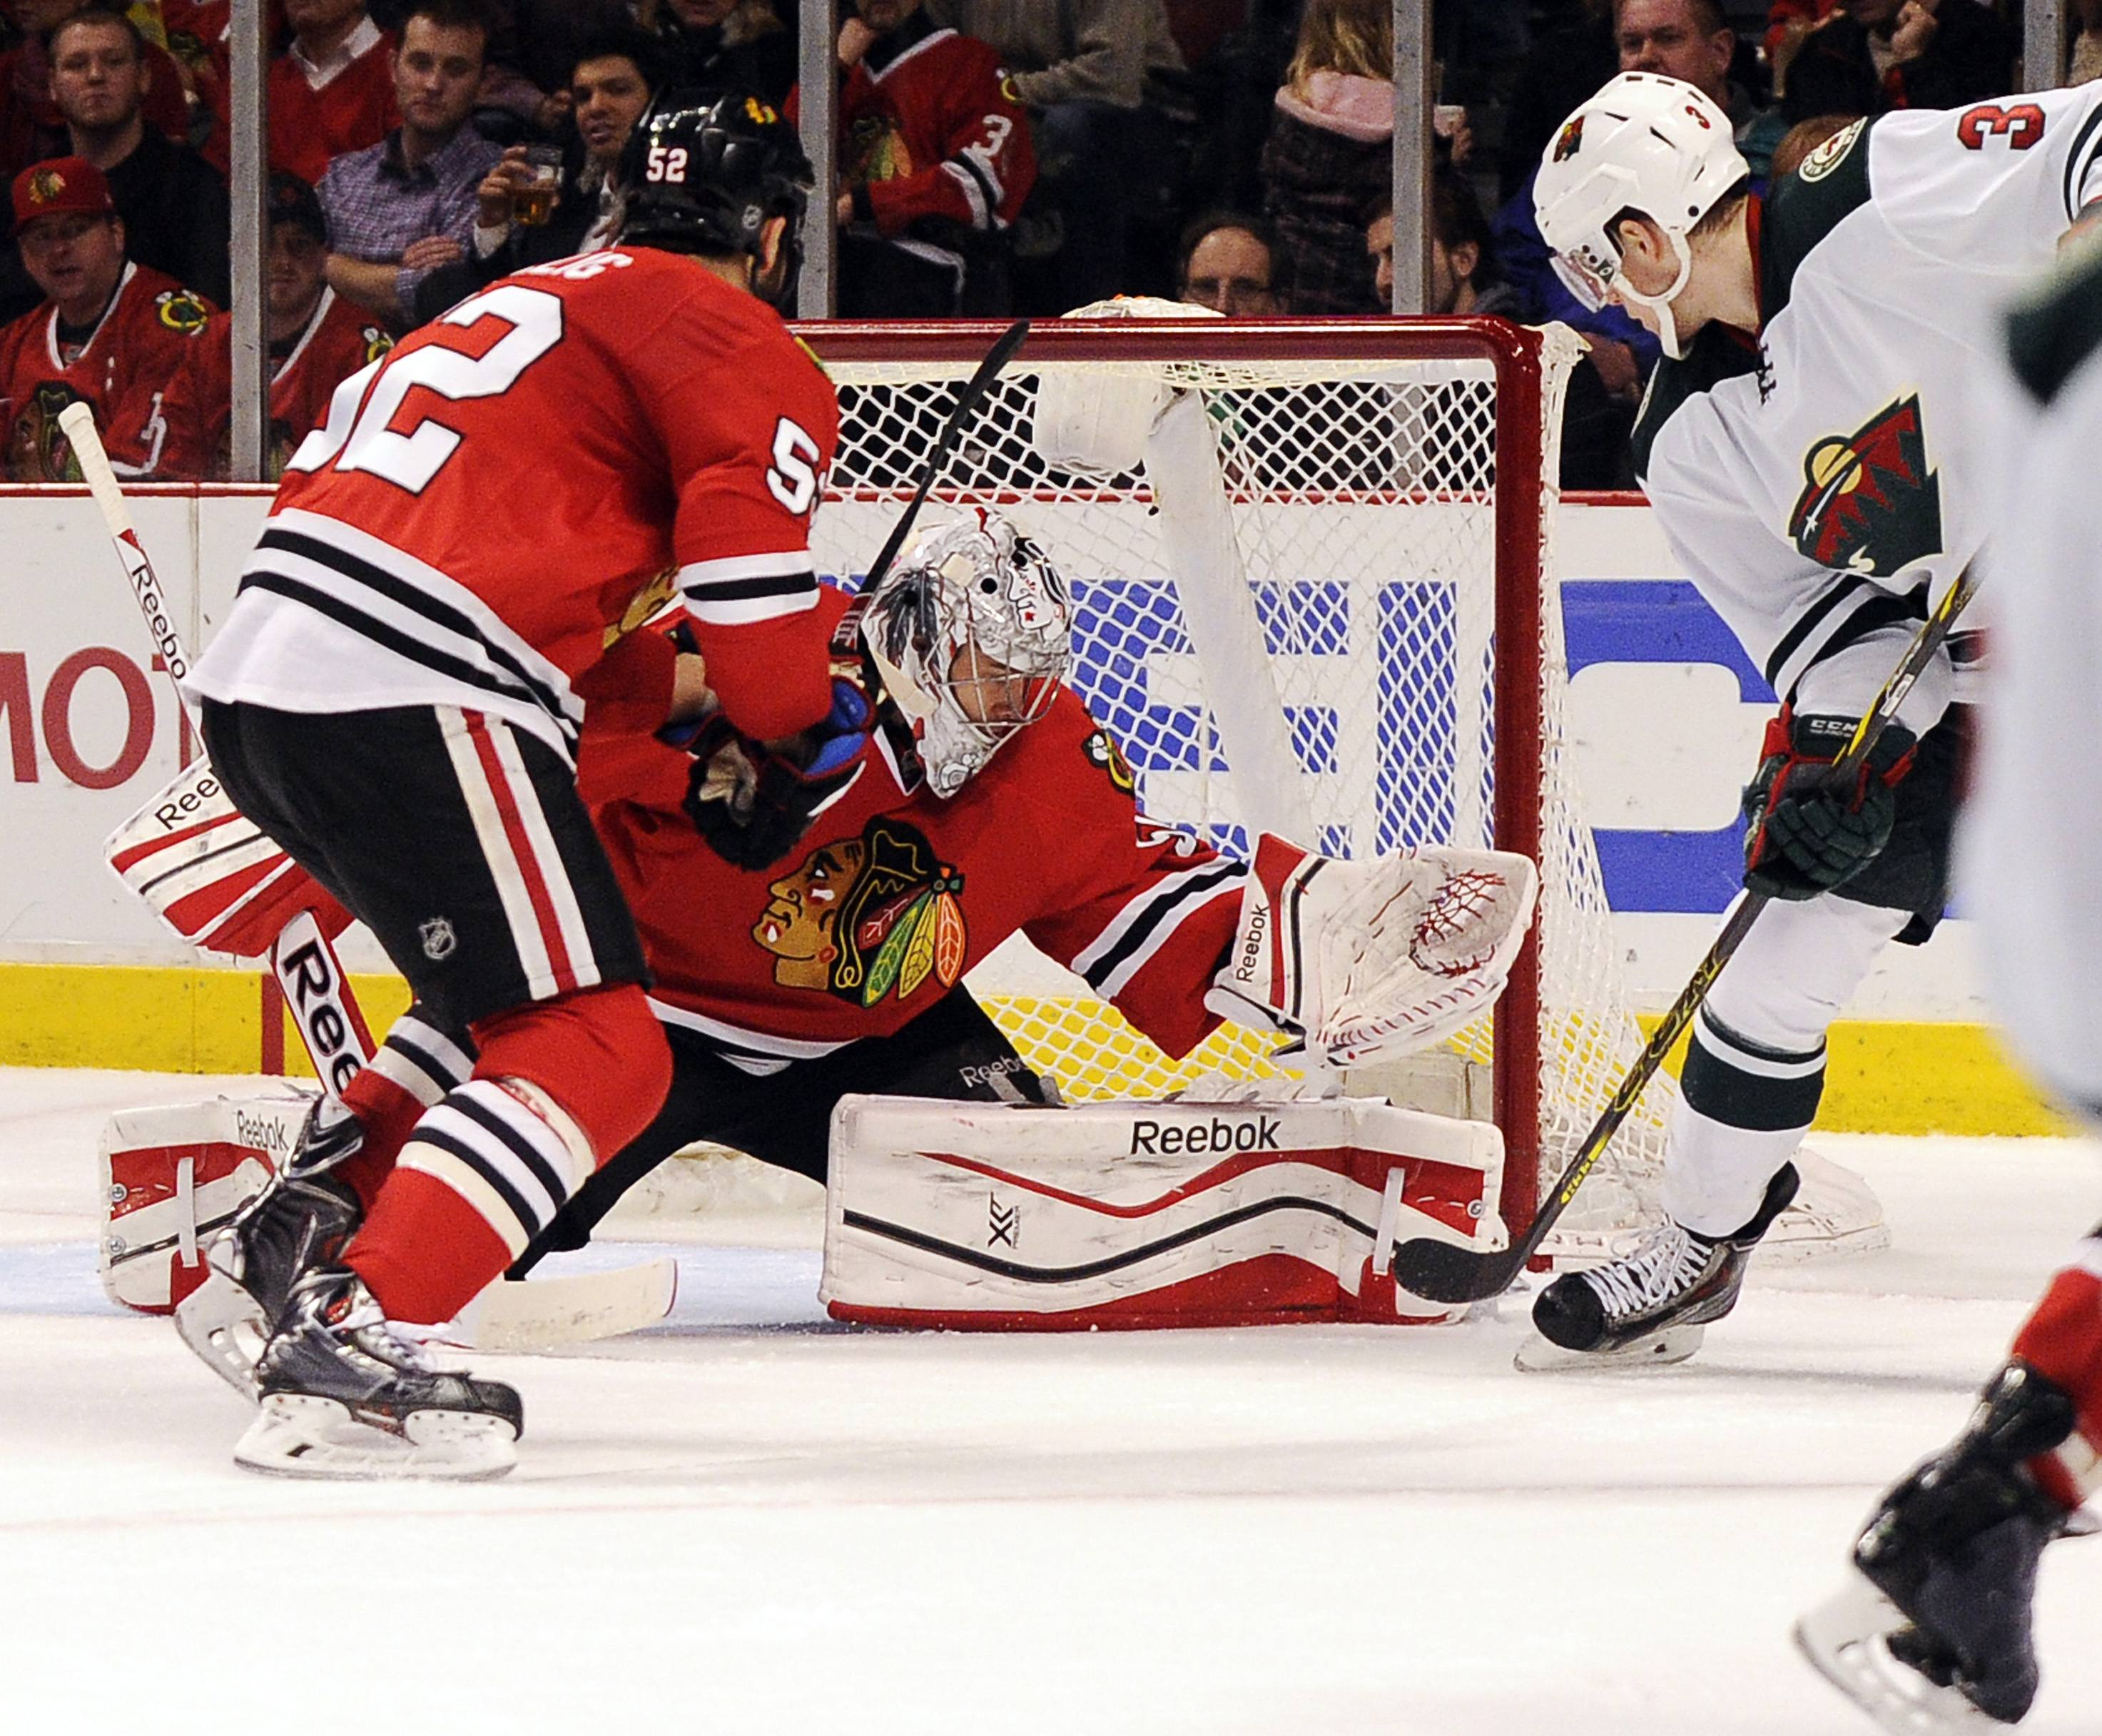 Minnesota Wild's Charlie Coyle (3) scores a goal on Chicago Blackhawks goalie Corey Crawford, center, as Brandon Bollig skates near in the first period of an NHL hockey game in Chicago, Thursday, April 3, 2014.